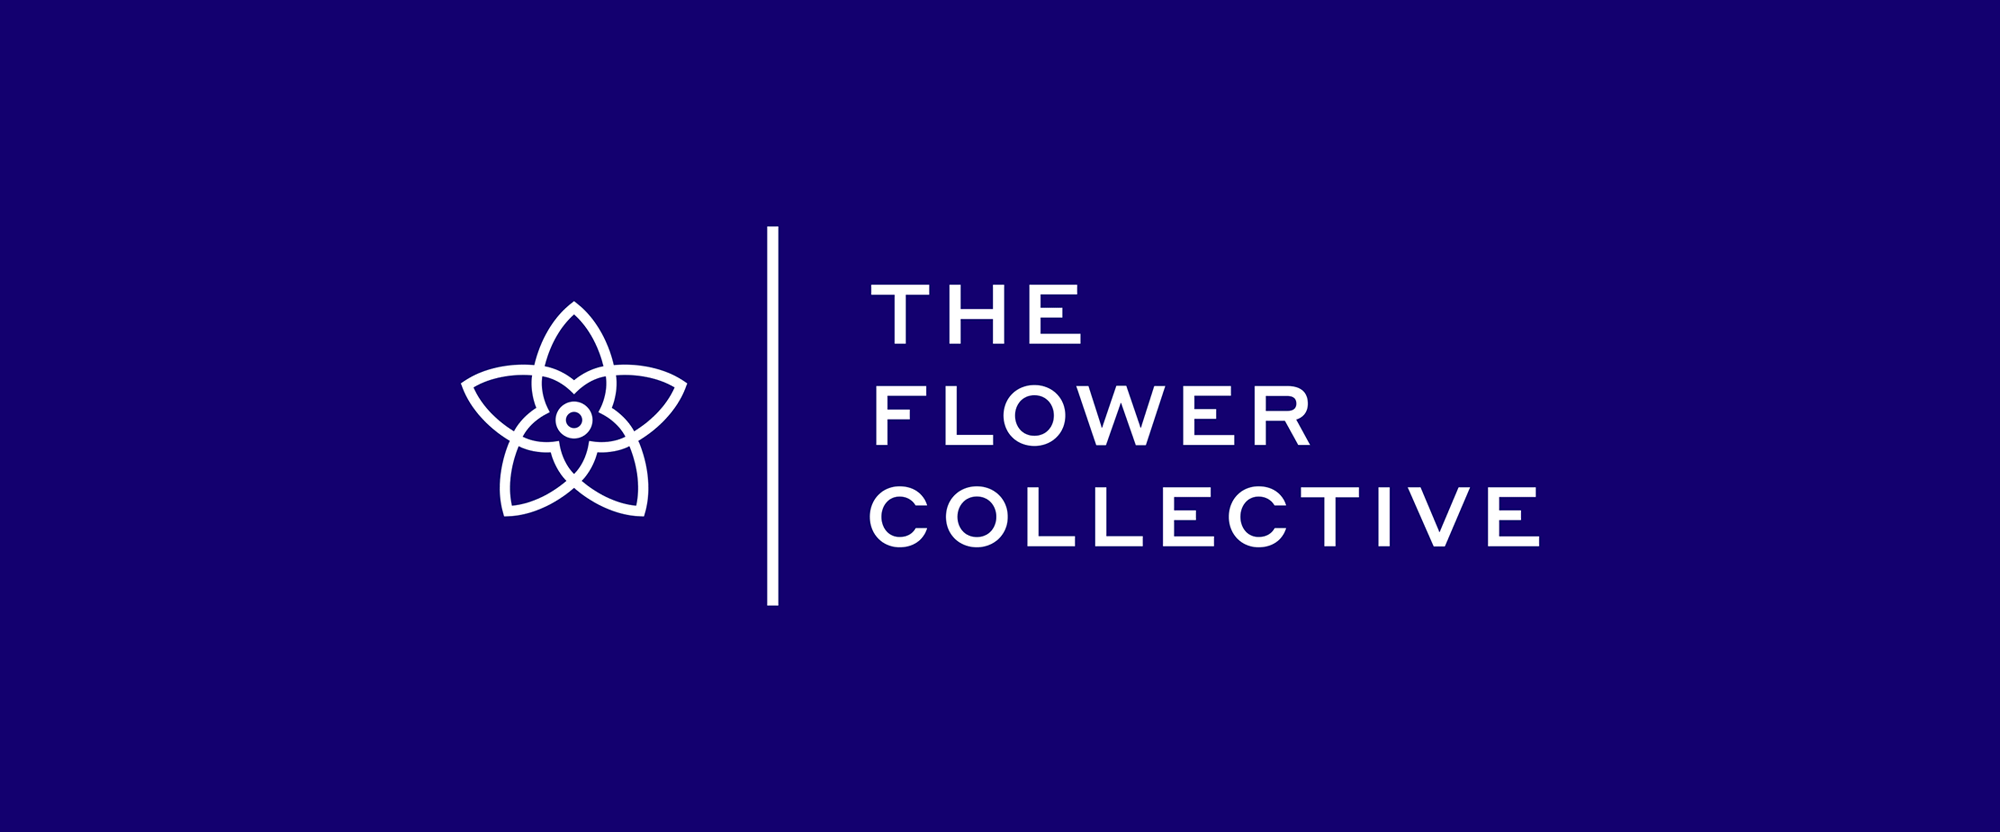 New Logo, Identity, and Packaging for The Flower Collective by Cast Iron Design